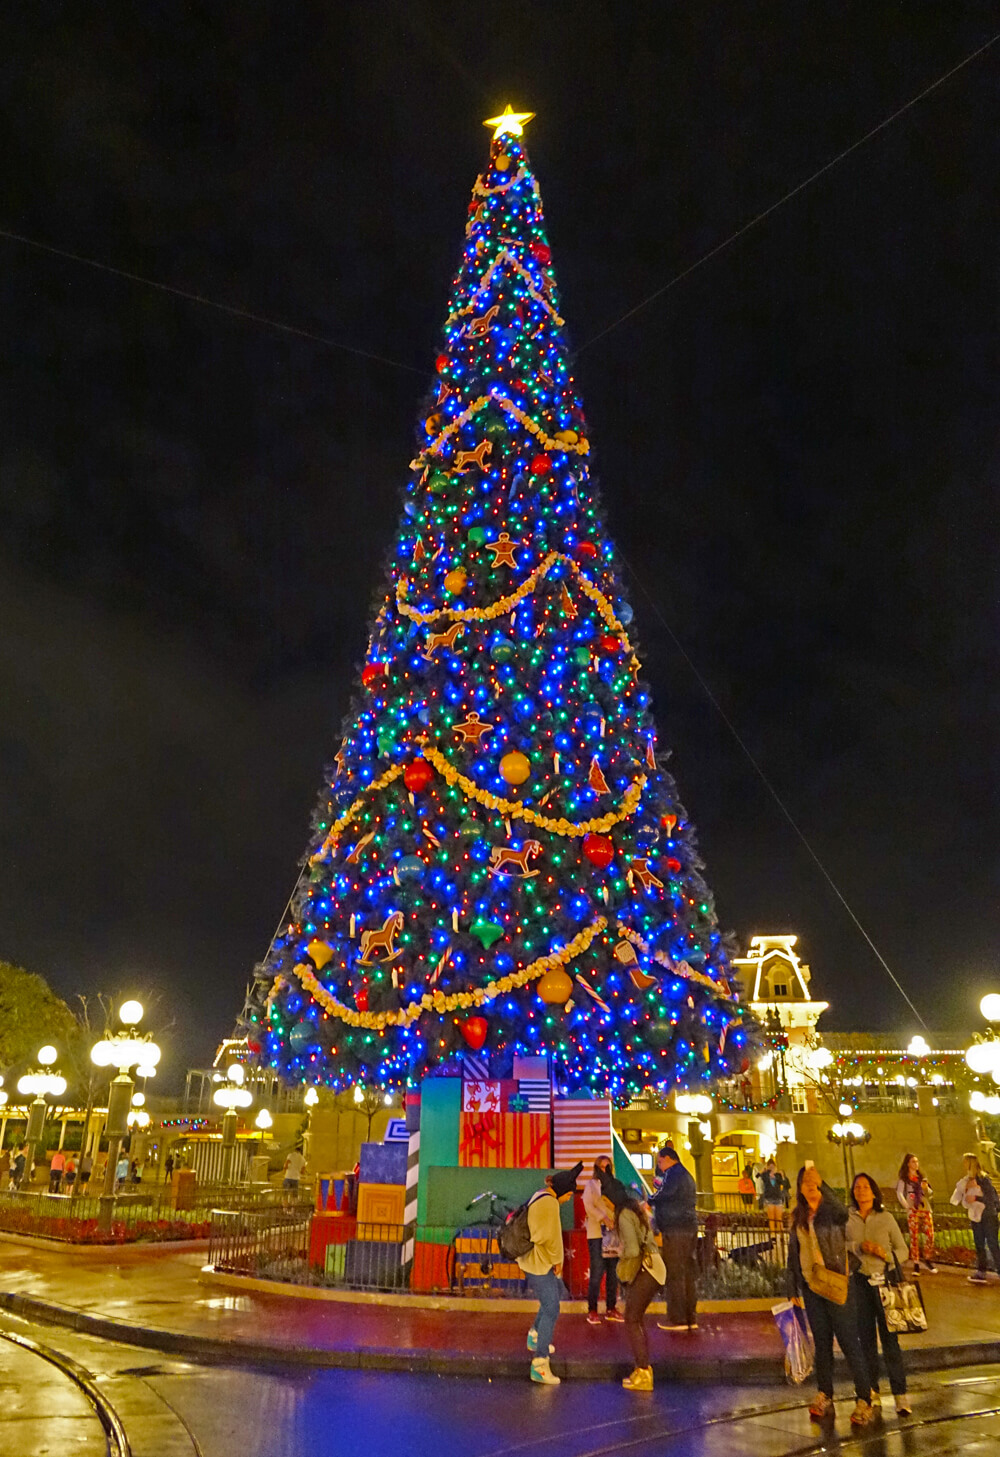 disney world holiday events 2018 magic kingdom tree - Disney Beauty And The Beast Christmas Decorations